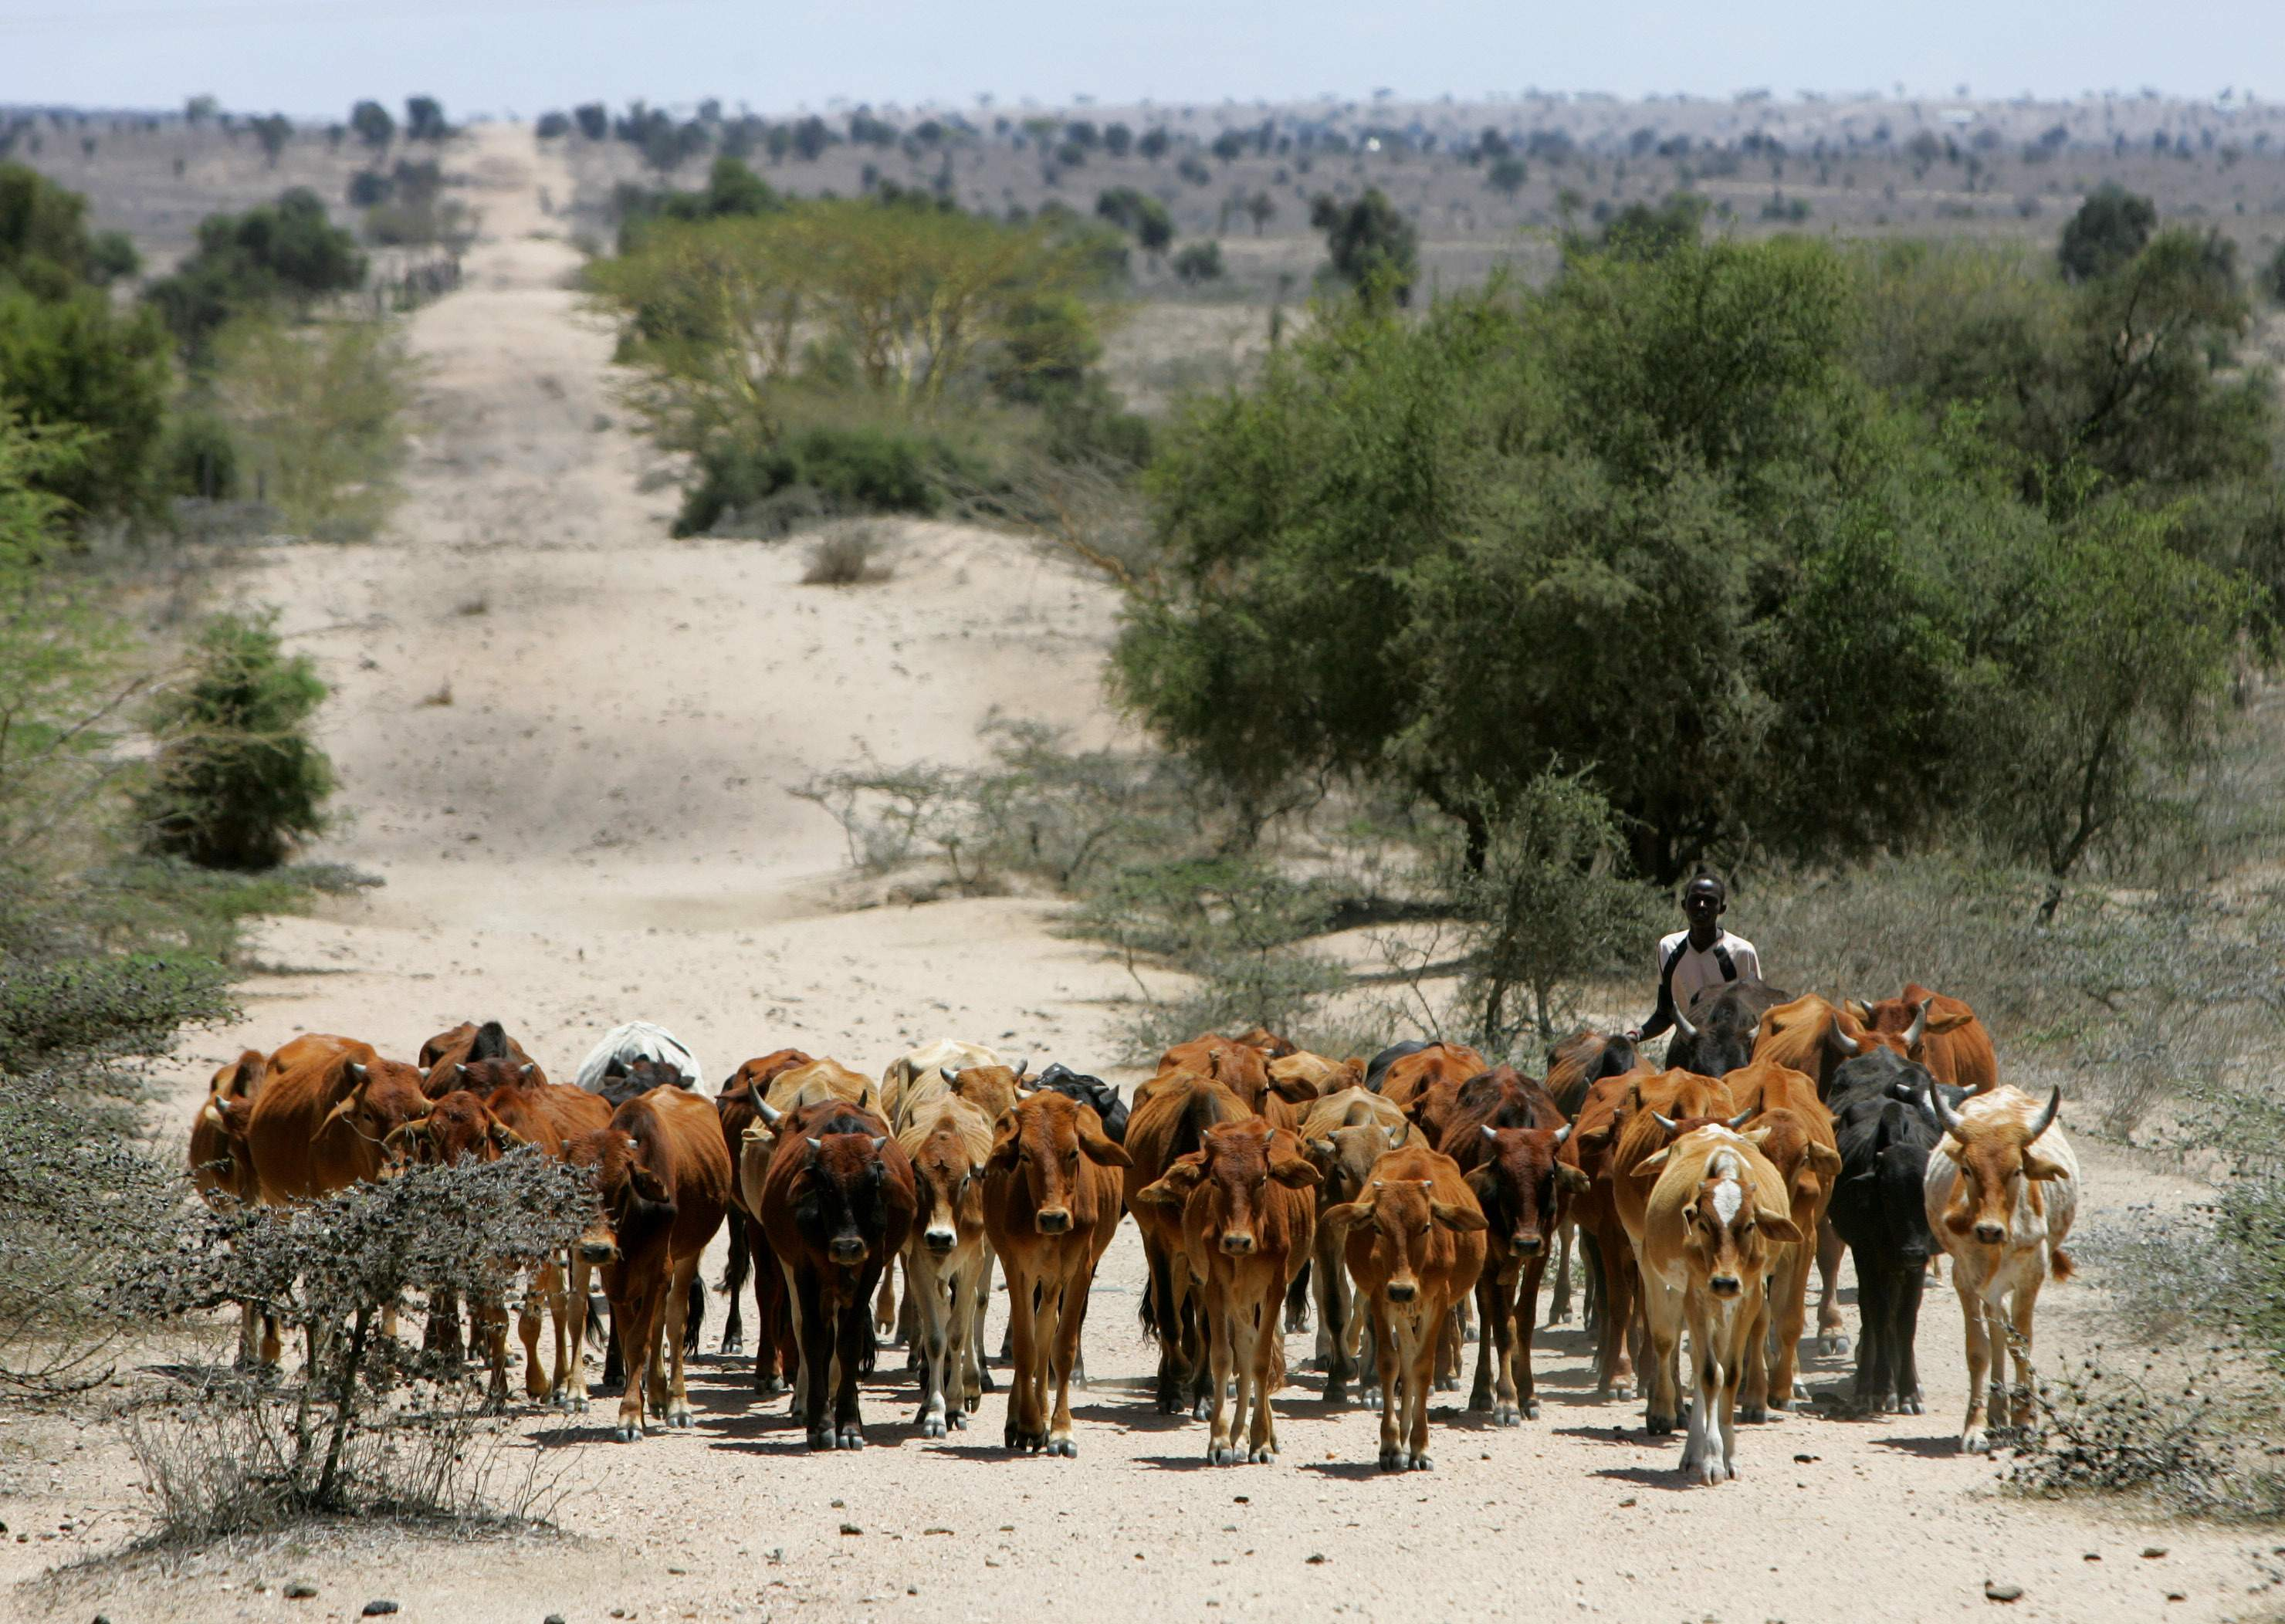 drought eastern africa East africa drought in e africa leaves millions in need of aid  failed crops, emaciated cattle, and food shortages are just some of the challenges facing people in east africa as they struggle.